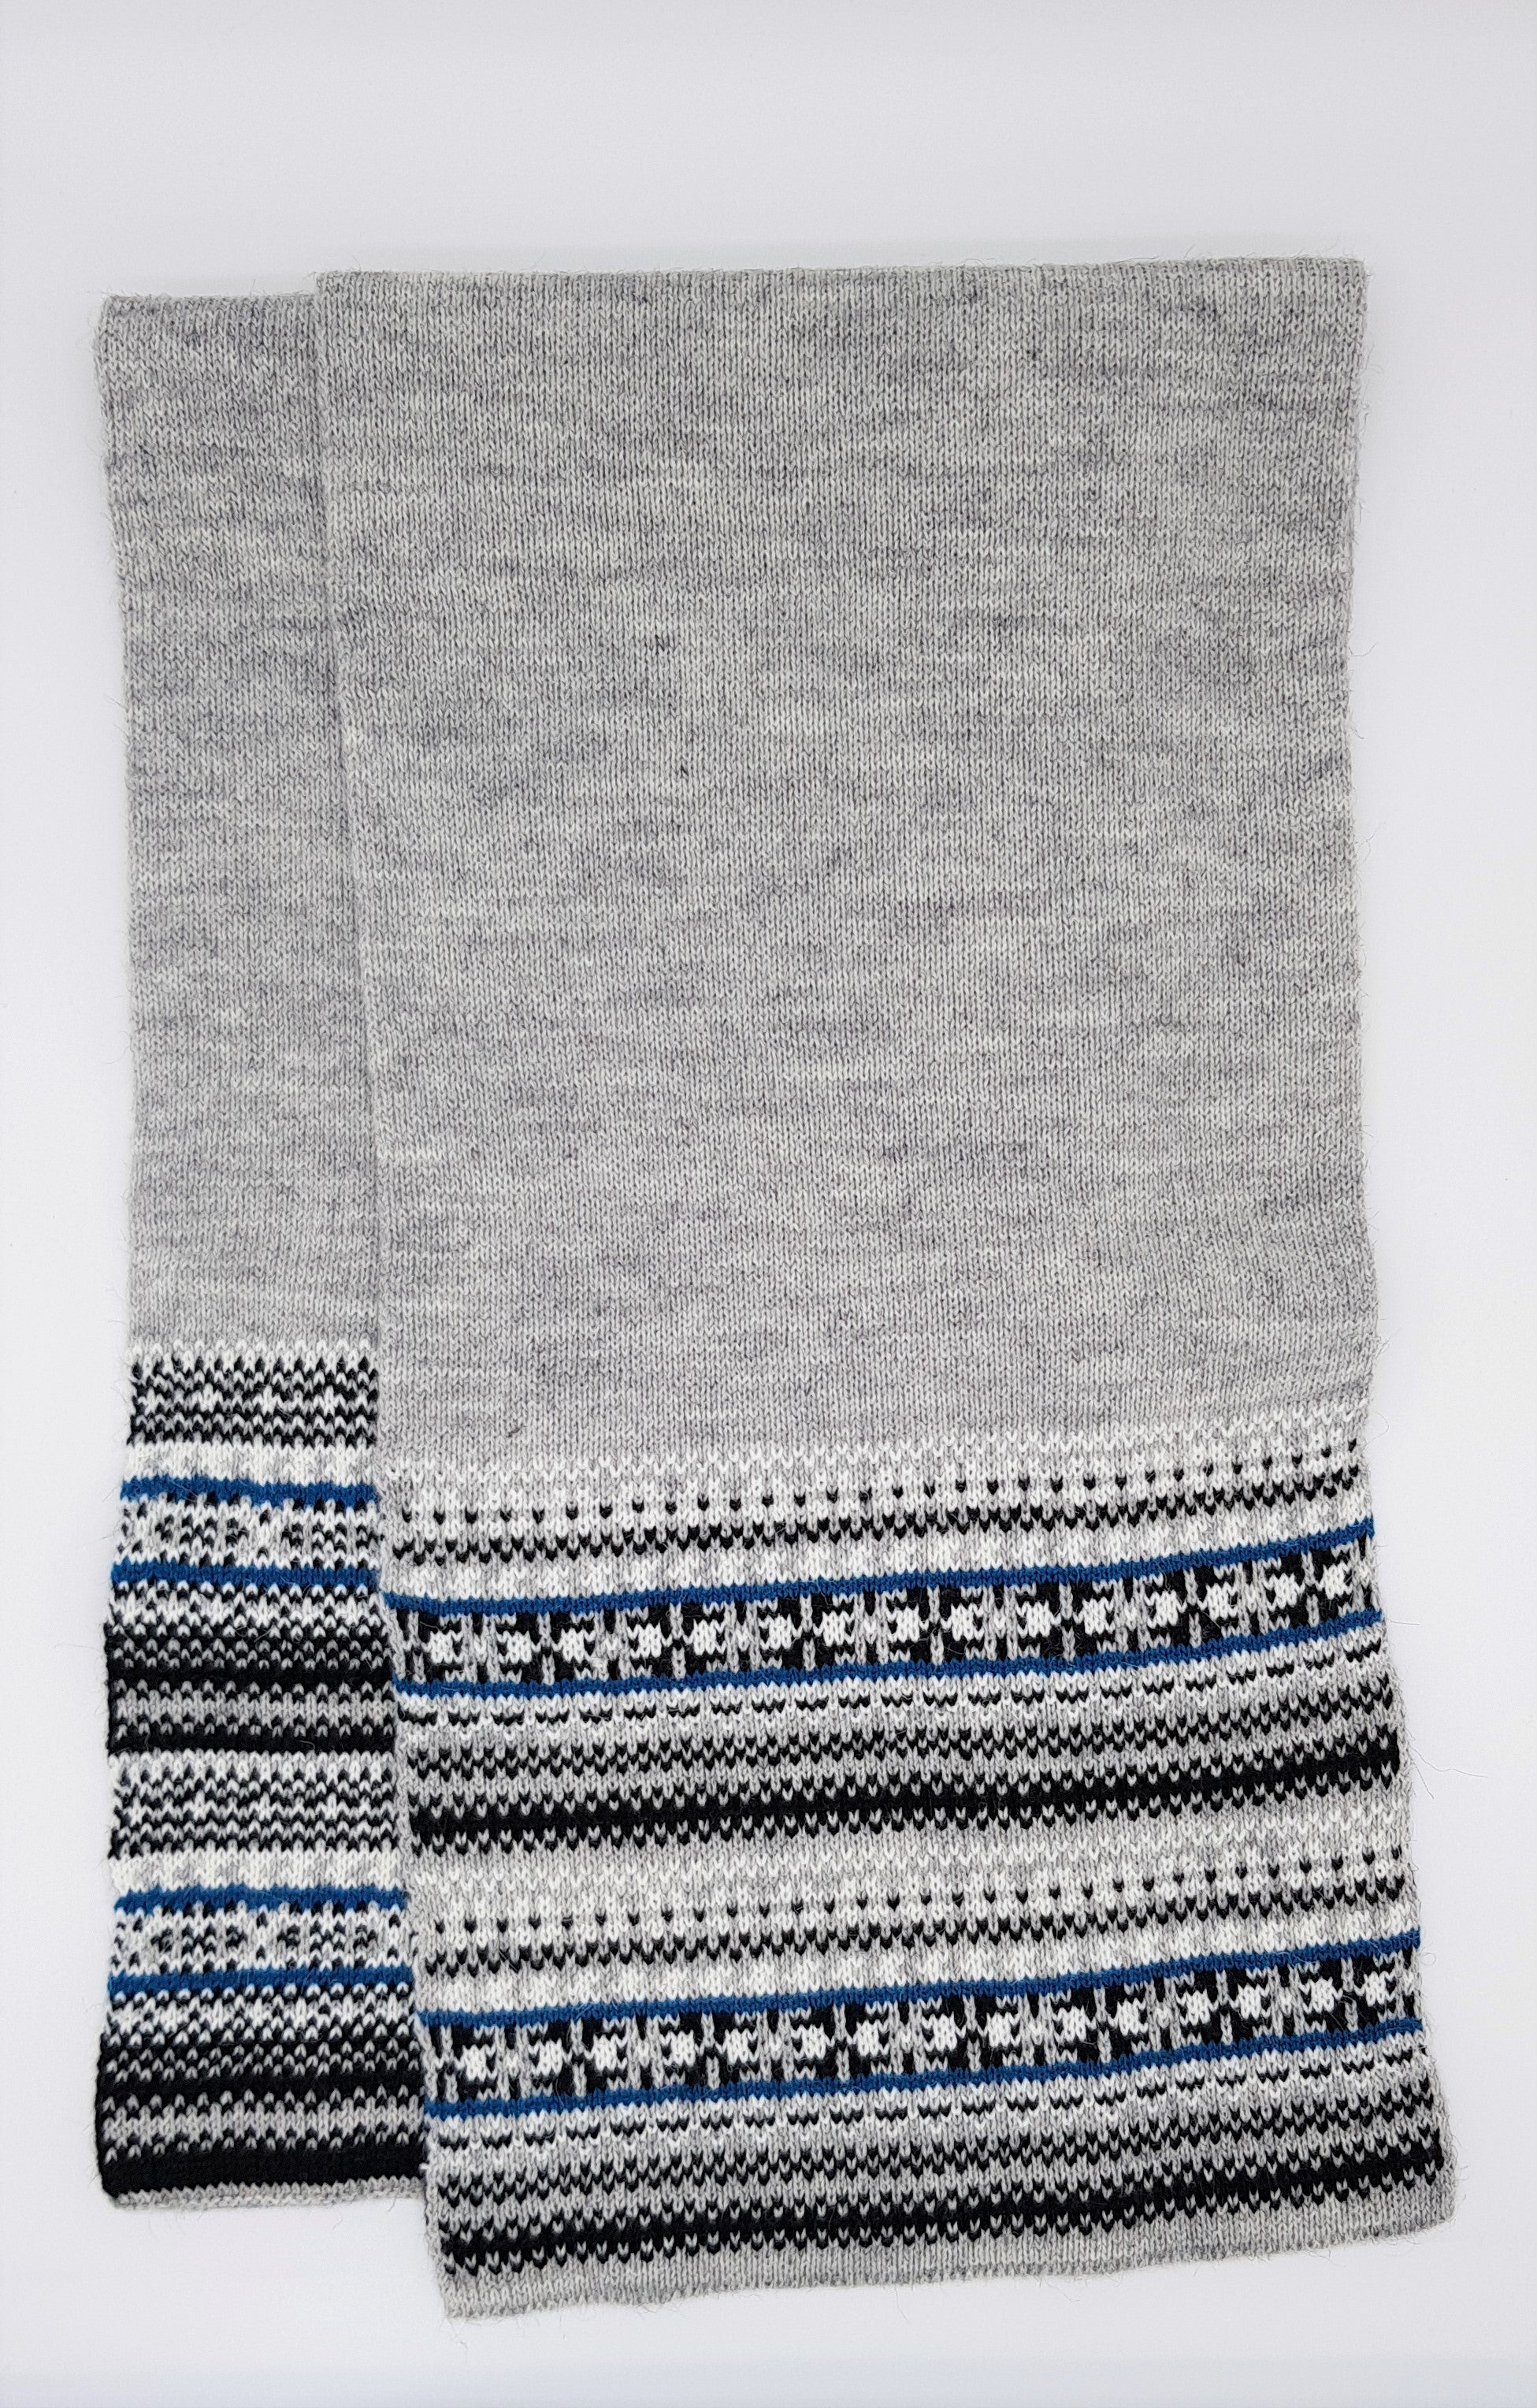 Nordic scarf - Grey, black and blue